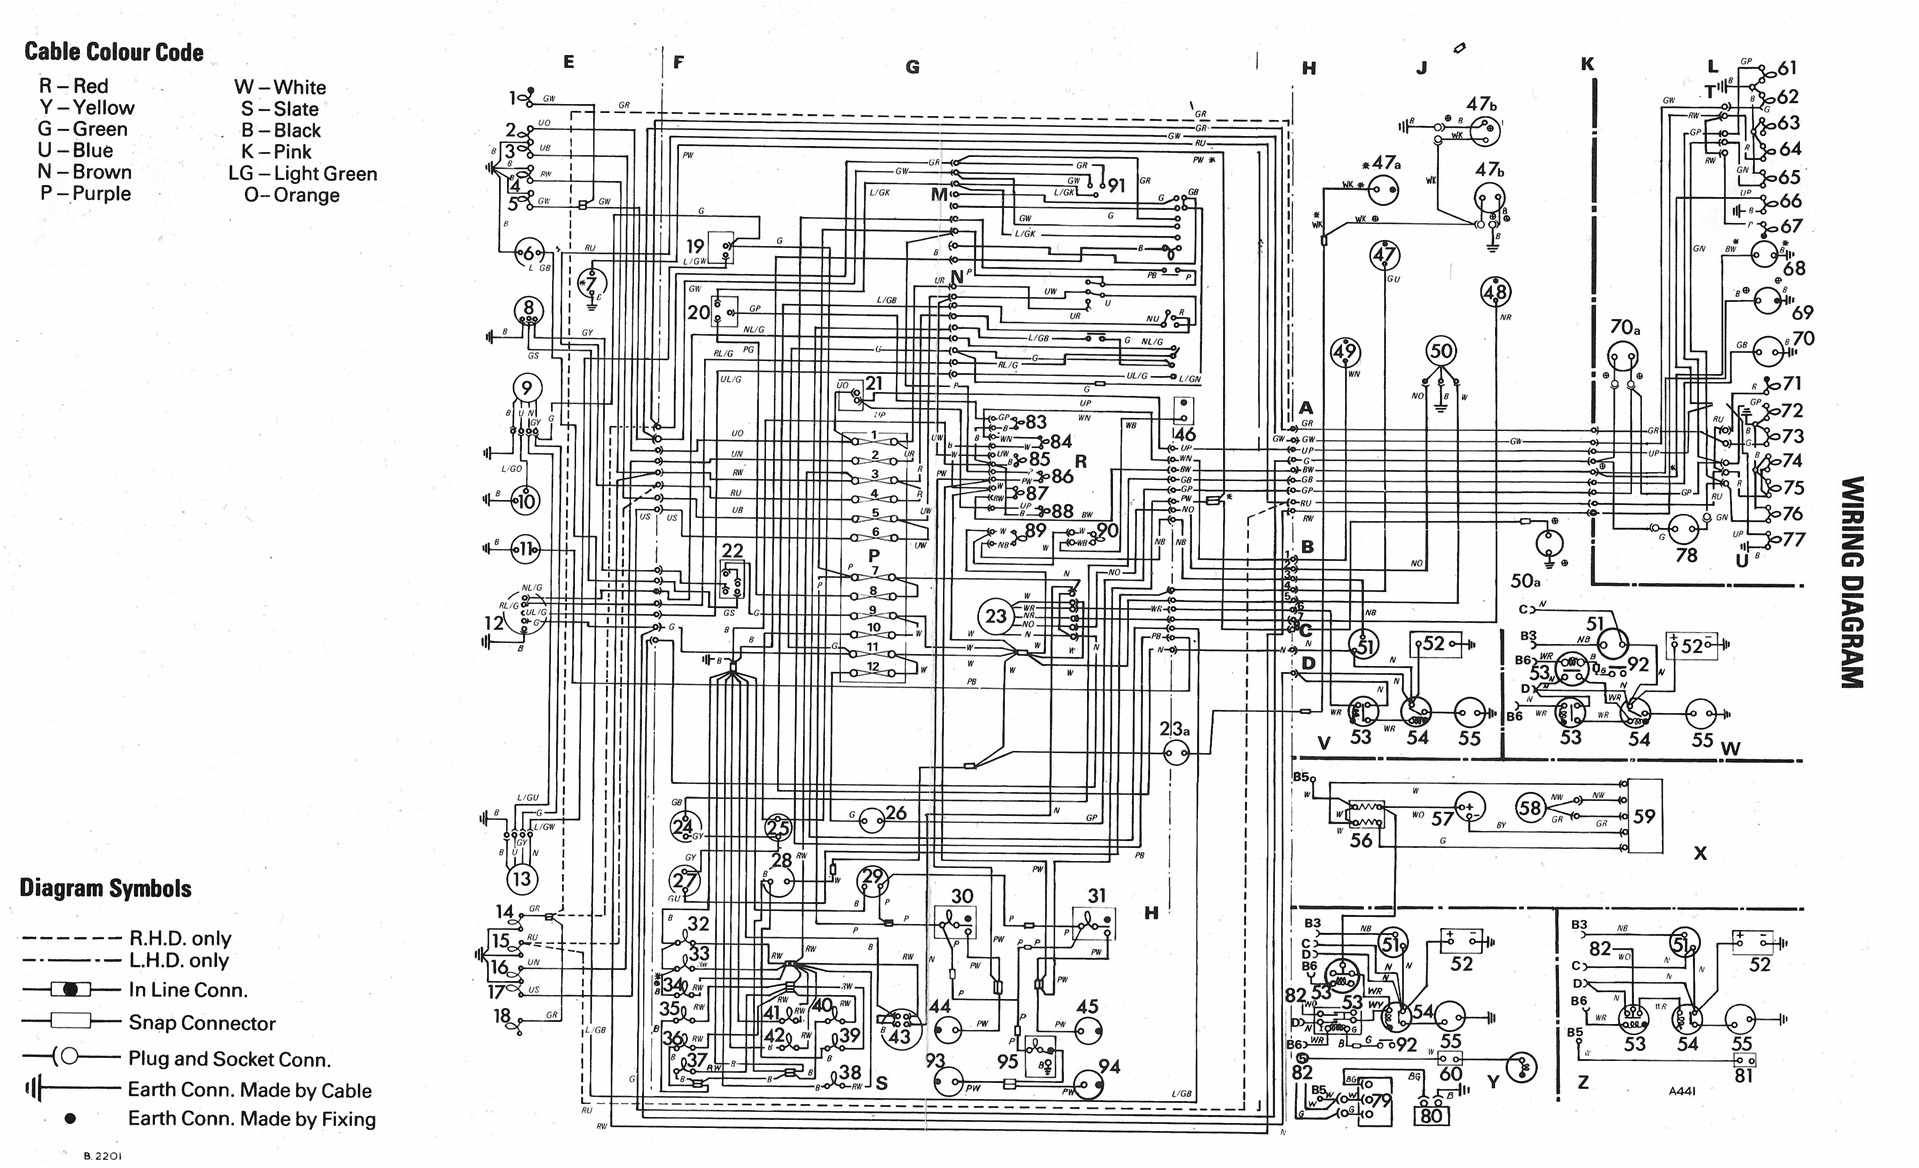 electrical wiring diagram of volkswagen golf mk1 [ 1919 x 1168 Pixel ]